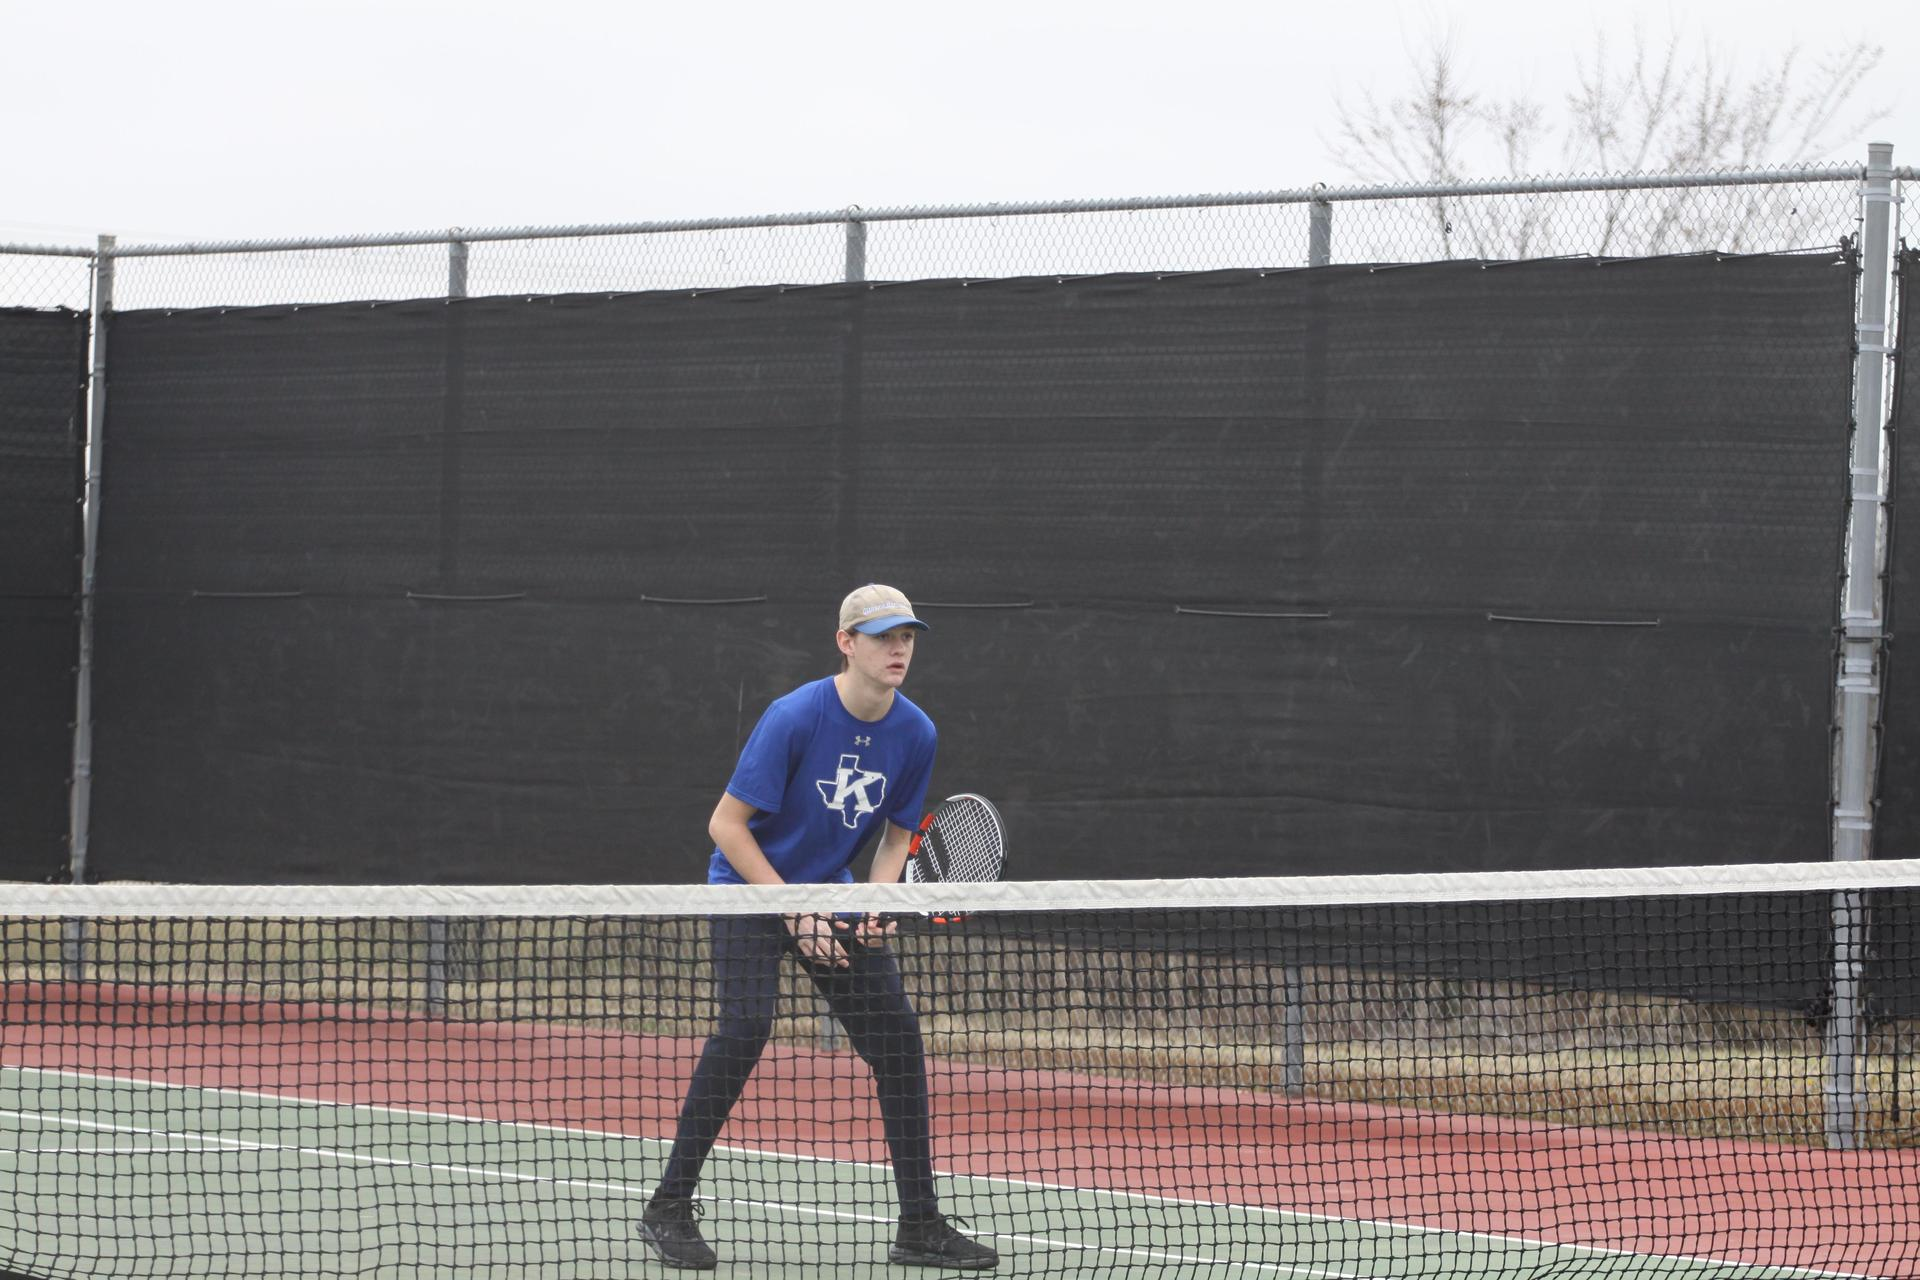 a tennis players stands ready with racket in hand behind the net